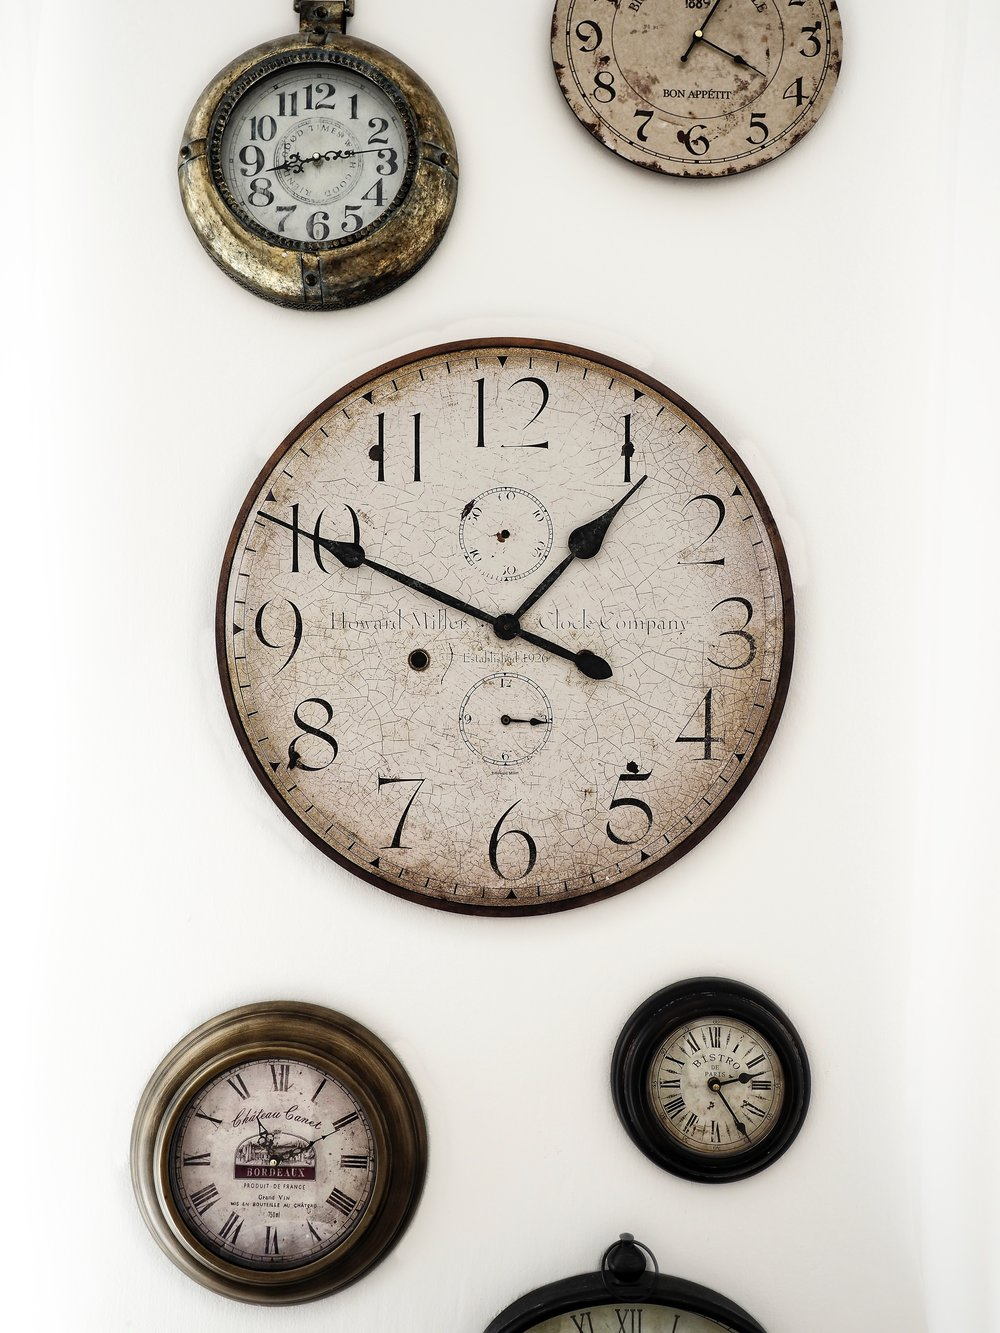 2. - Don't let time stop – If you have wall clocks make sure they are always ticking because a ticking clock activates positive energy that impacts happiness and finances. A non- working clock stagnates energy in your home and life. I just all together avoid wall clocks.